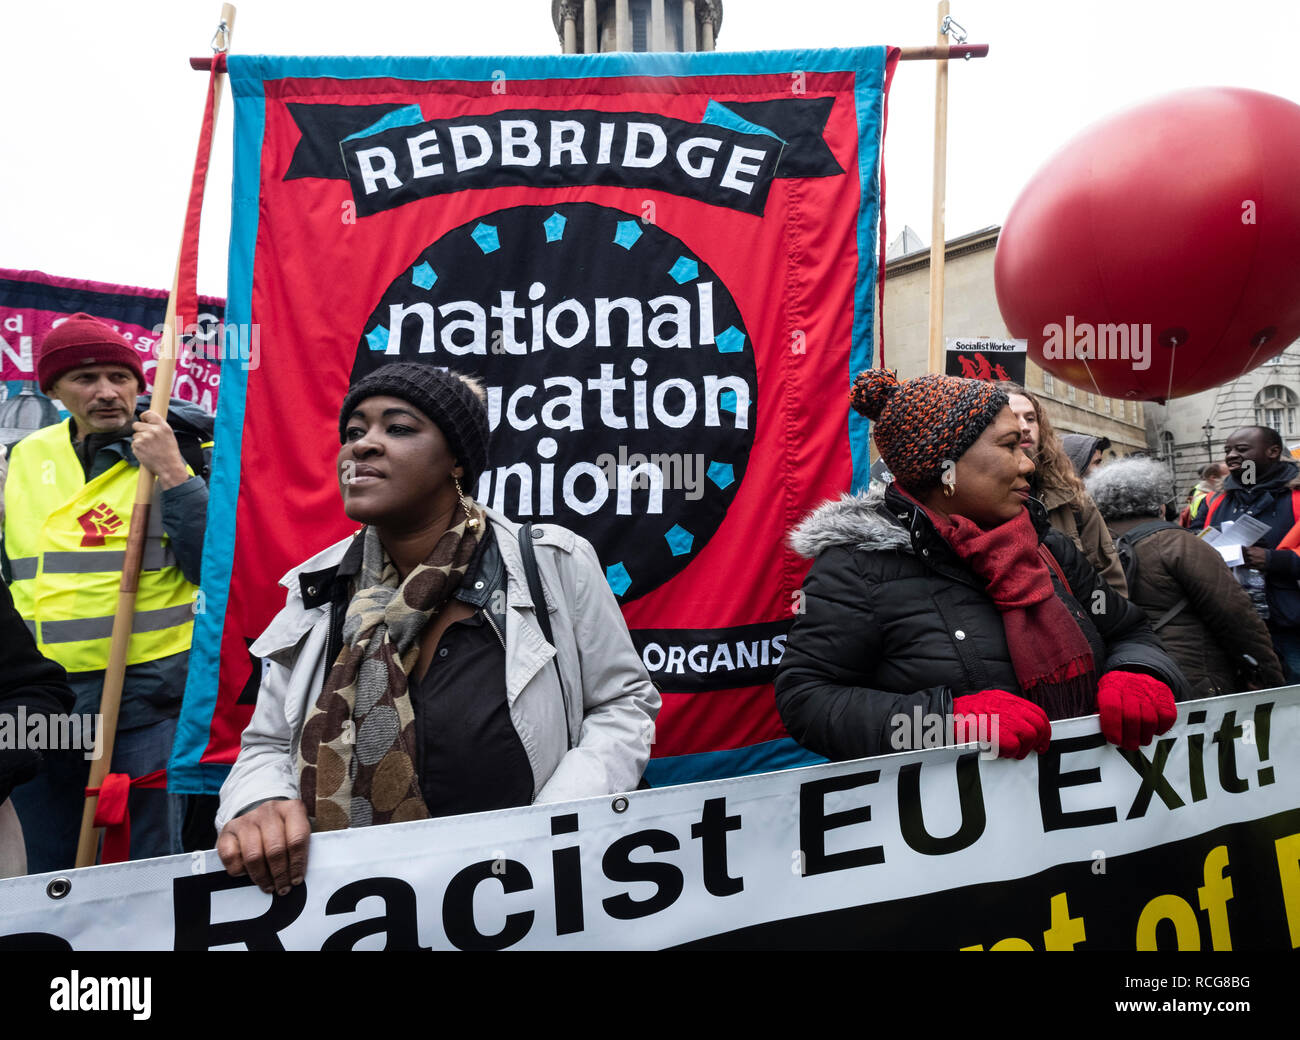 Britain is Broken anti-Brexit march organised by Peoples Assembly marched through London demanding a general election. Protesting against UK government and an end to racism and austerity. Jan 12the 2019 - Stock Image